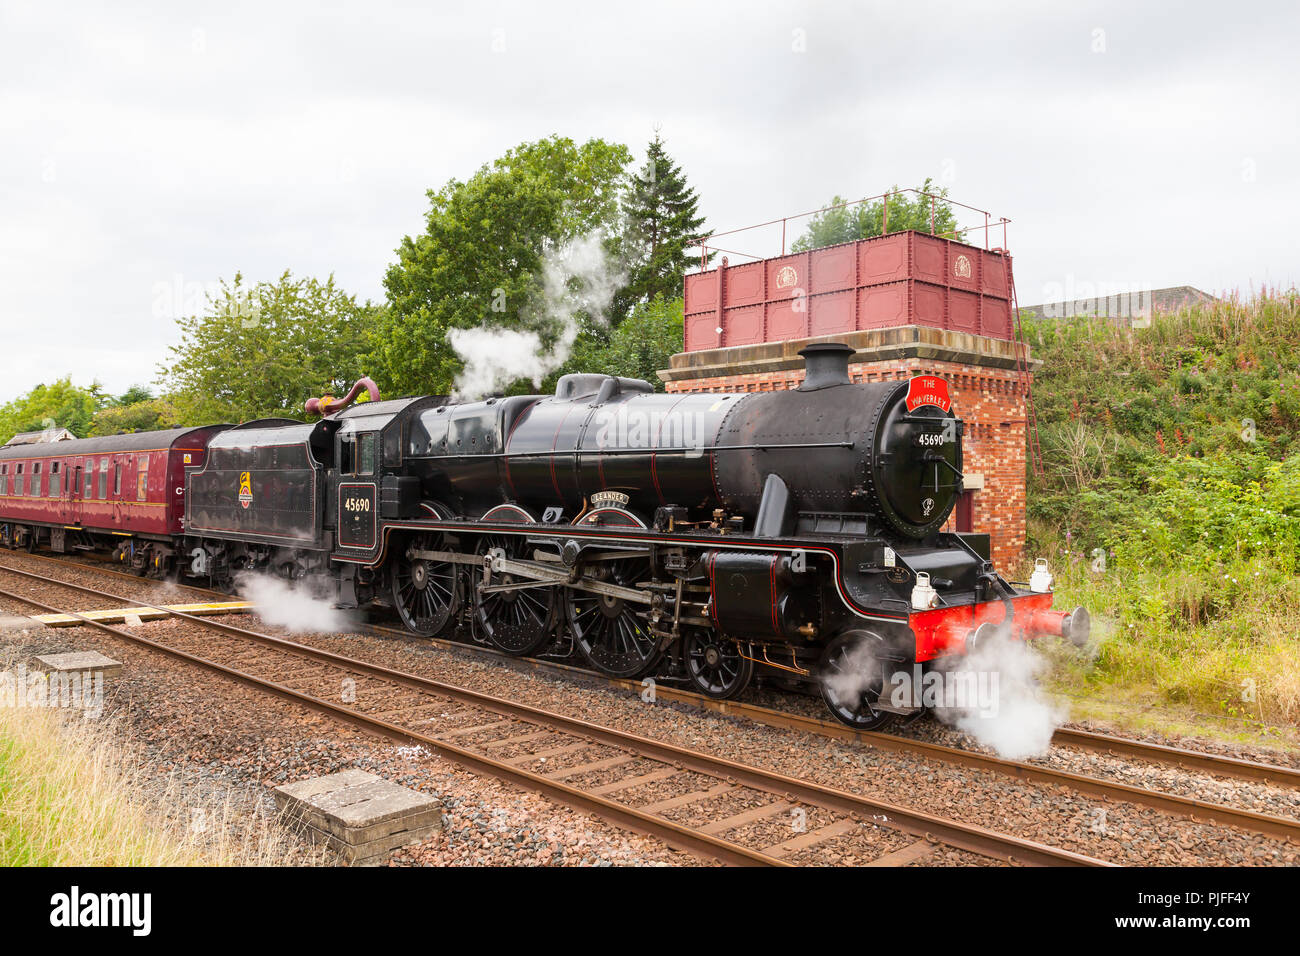 Steam train 45690, Leander, pictured at Appleby in Cumbria, England, on the Settle to Carlisle railway. - Stock Image